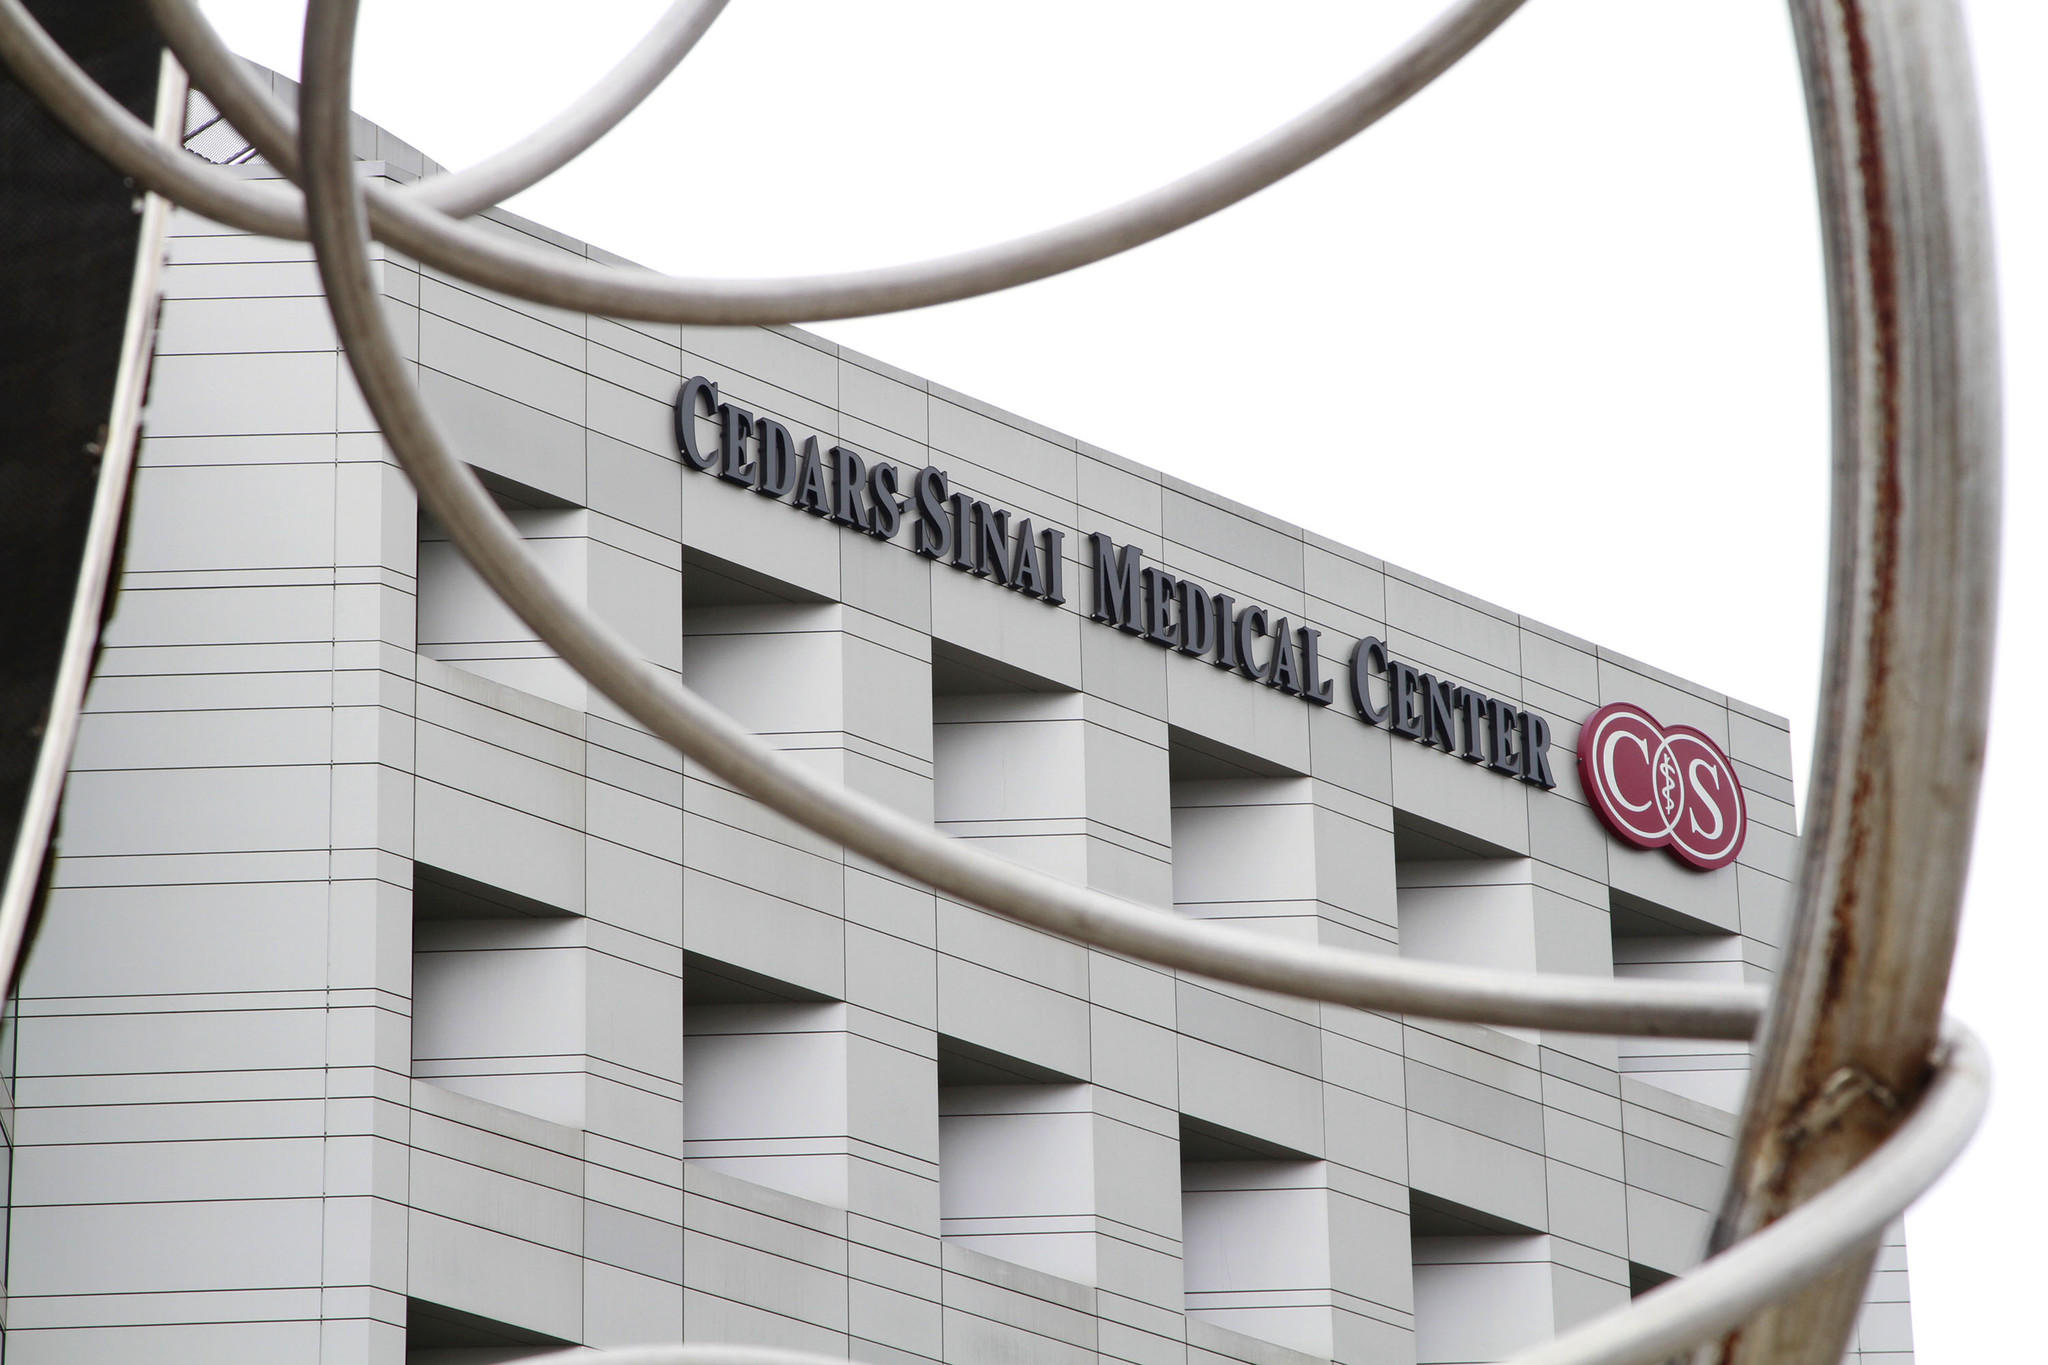 Authorities are investigating allegations a nursing assistant, who has since been fired, sexually assaulted two patients while they were heavily medicated and too weak to resist.